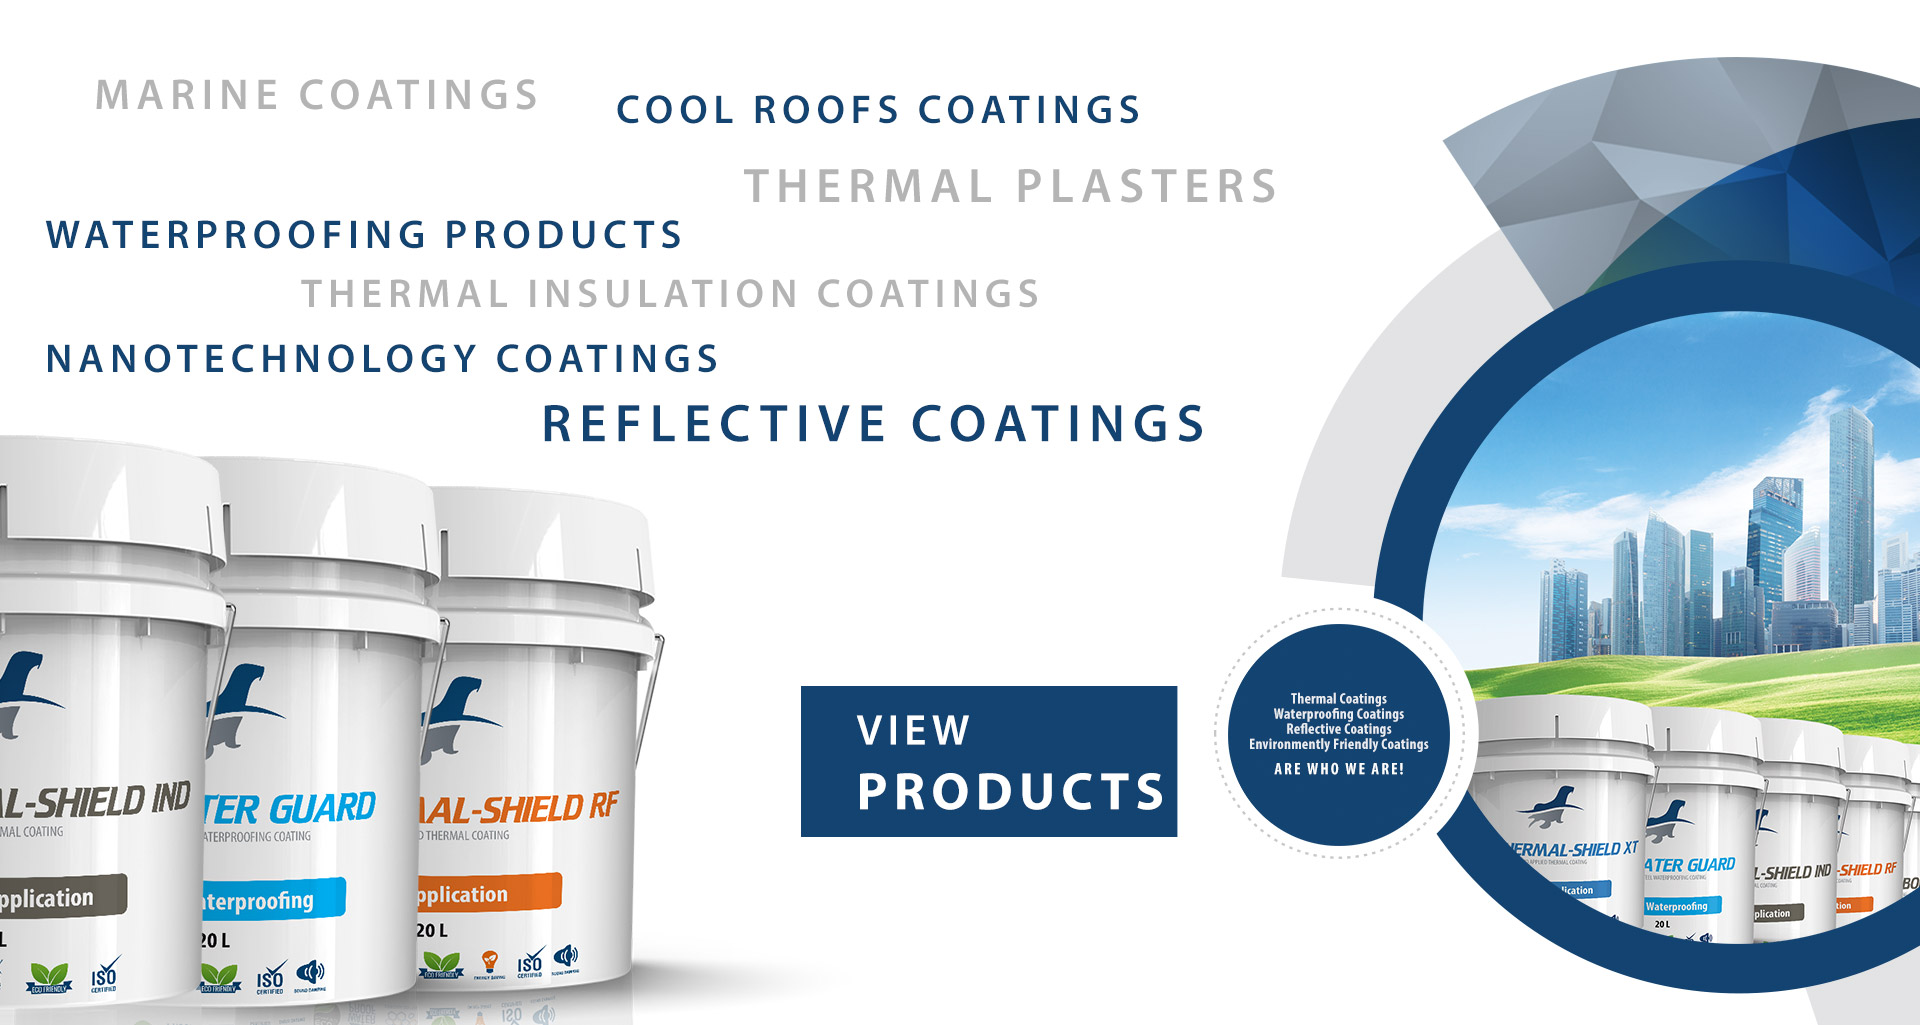 thermal insulation, marine,cool roofs coatings,industrial coatings